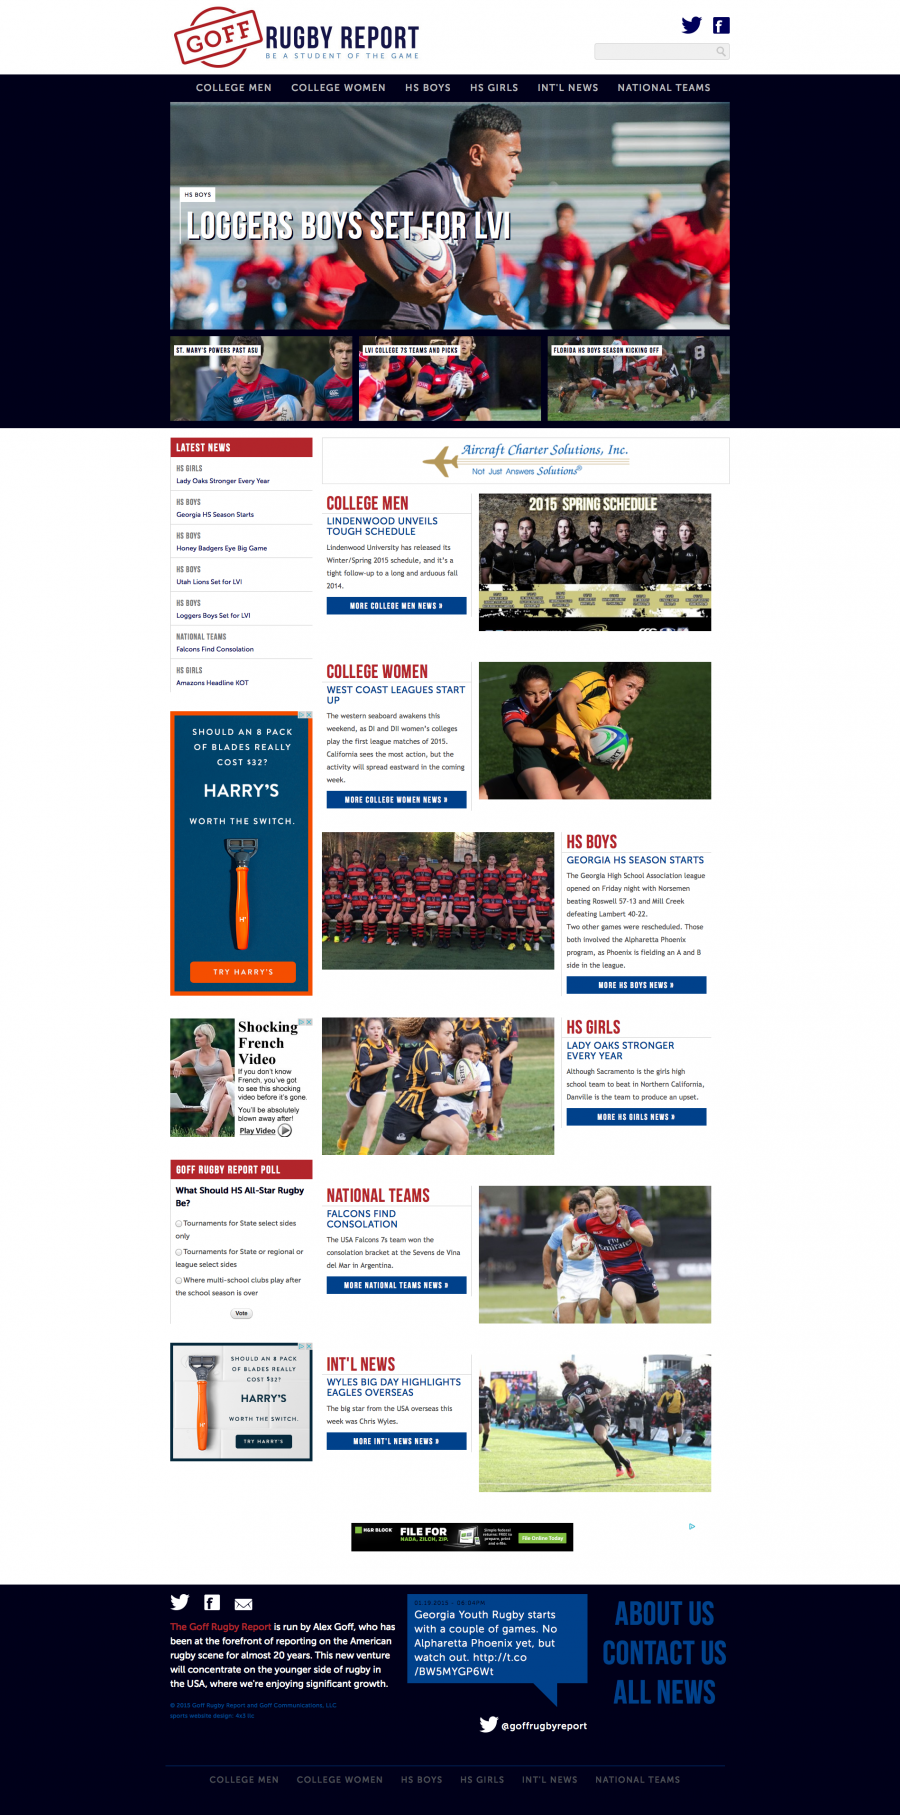 Goff Rugby Report Home Page